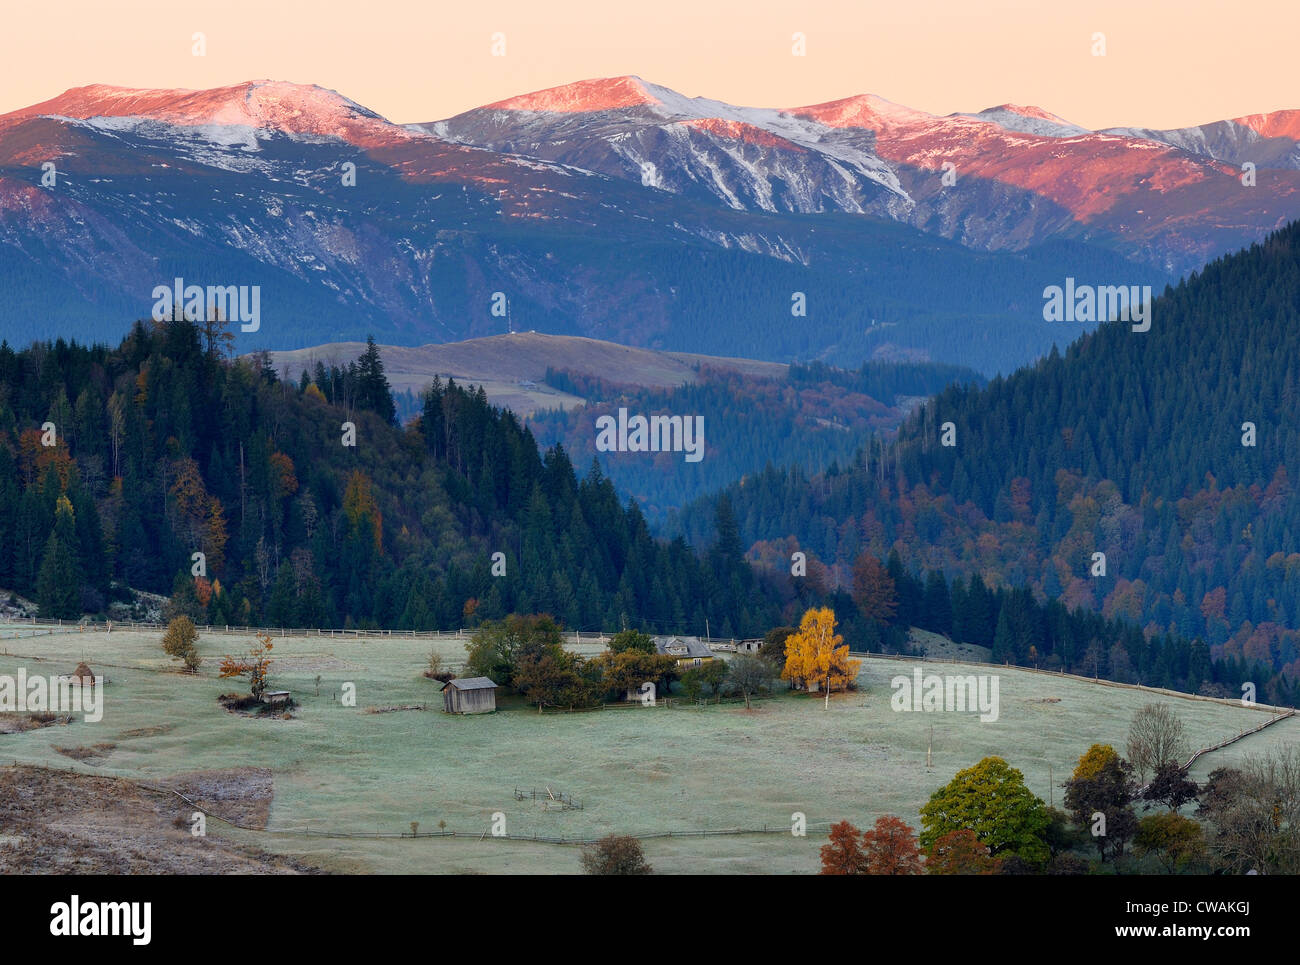 Krasnik village area, Carpathian Mountains, Ivano-Frankivsk region, Ukraine - Stock Image